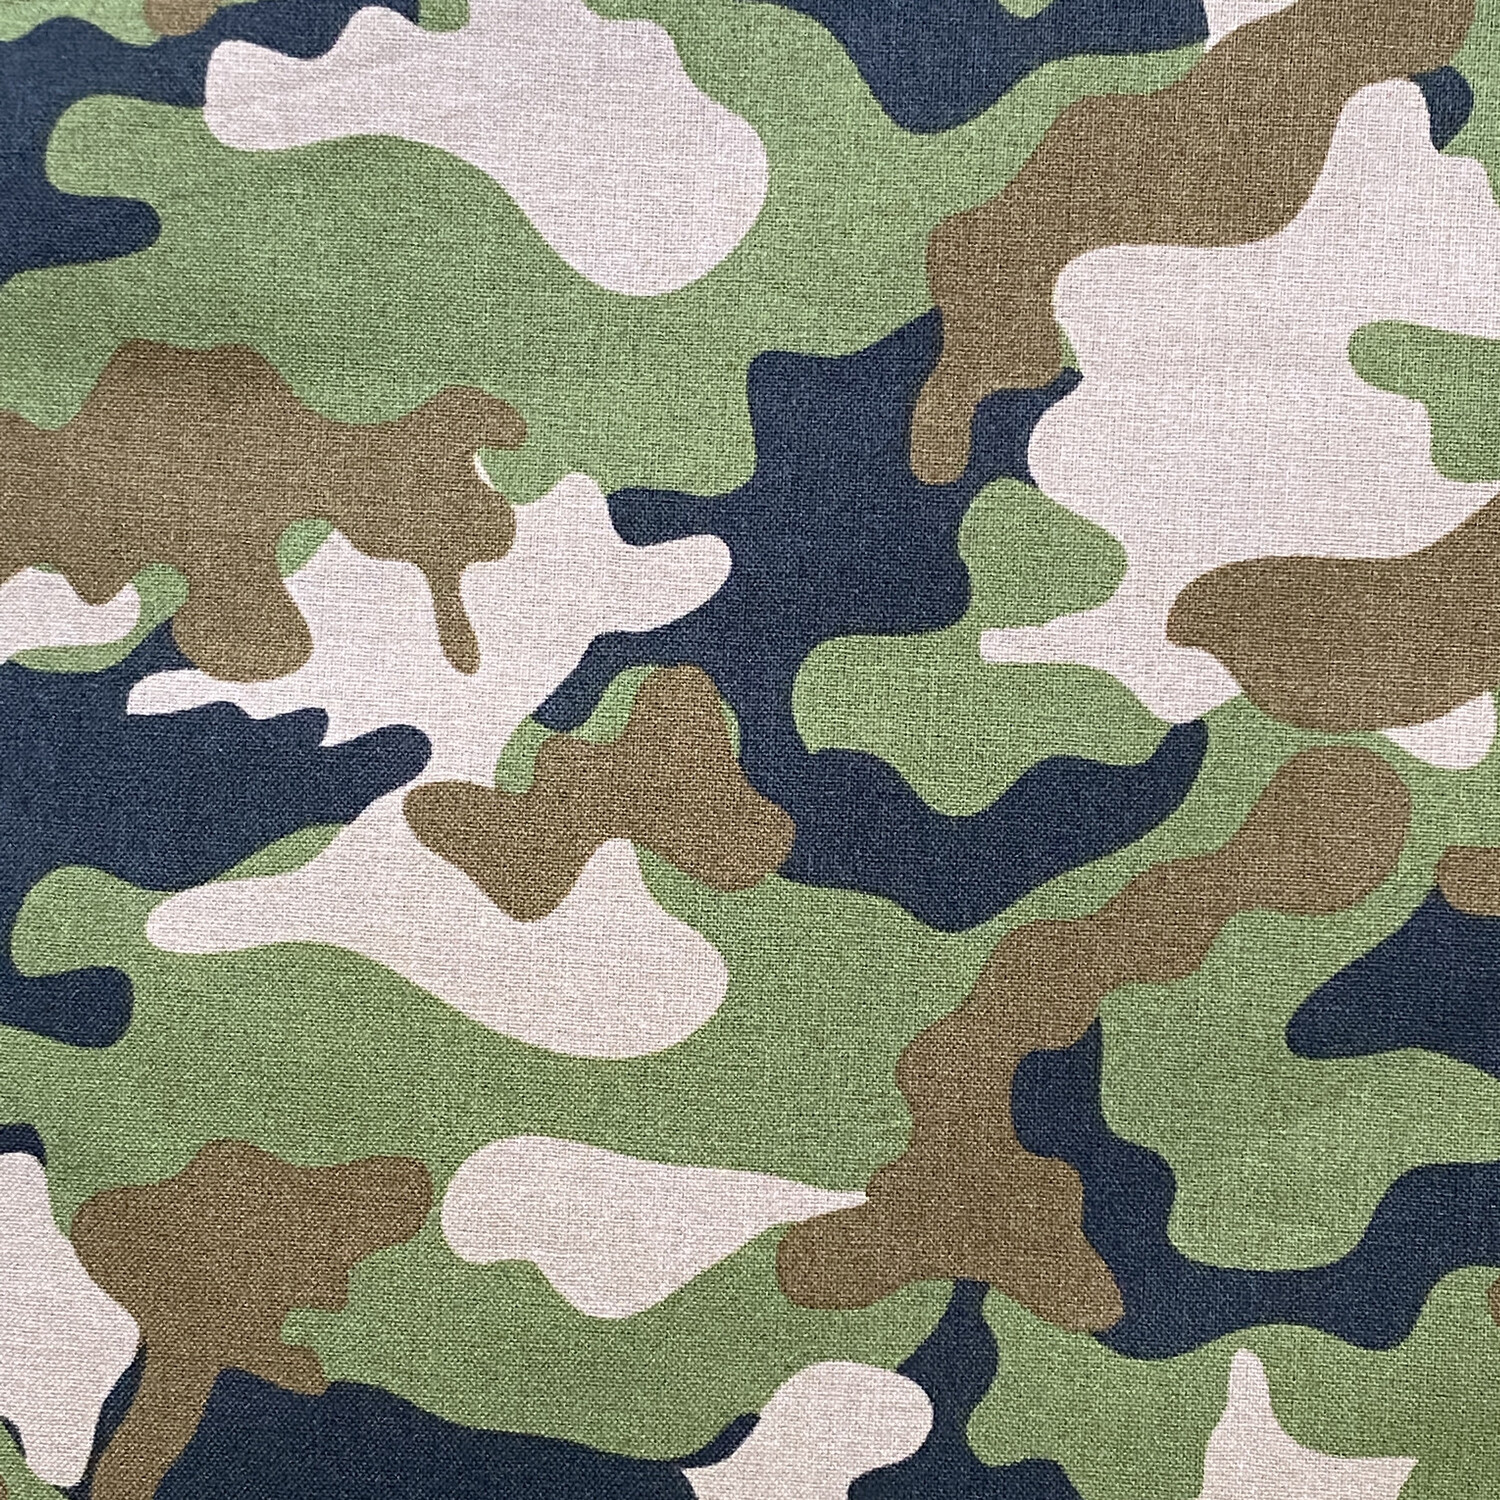 EasyFit Green Camouflage Military / Hunting Reusable Cloth Face Mask